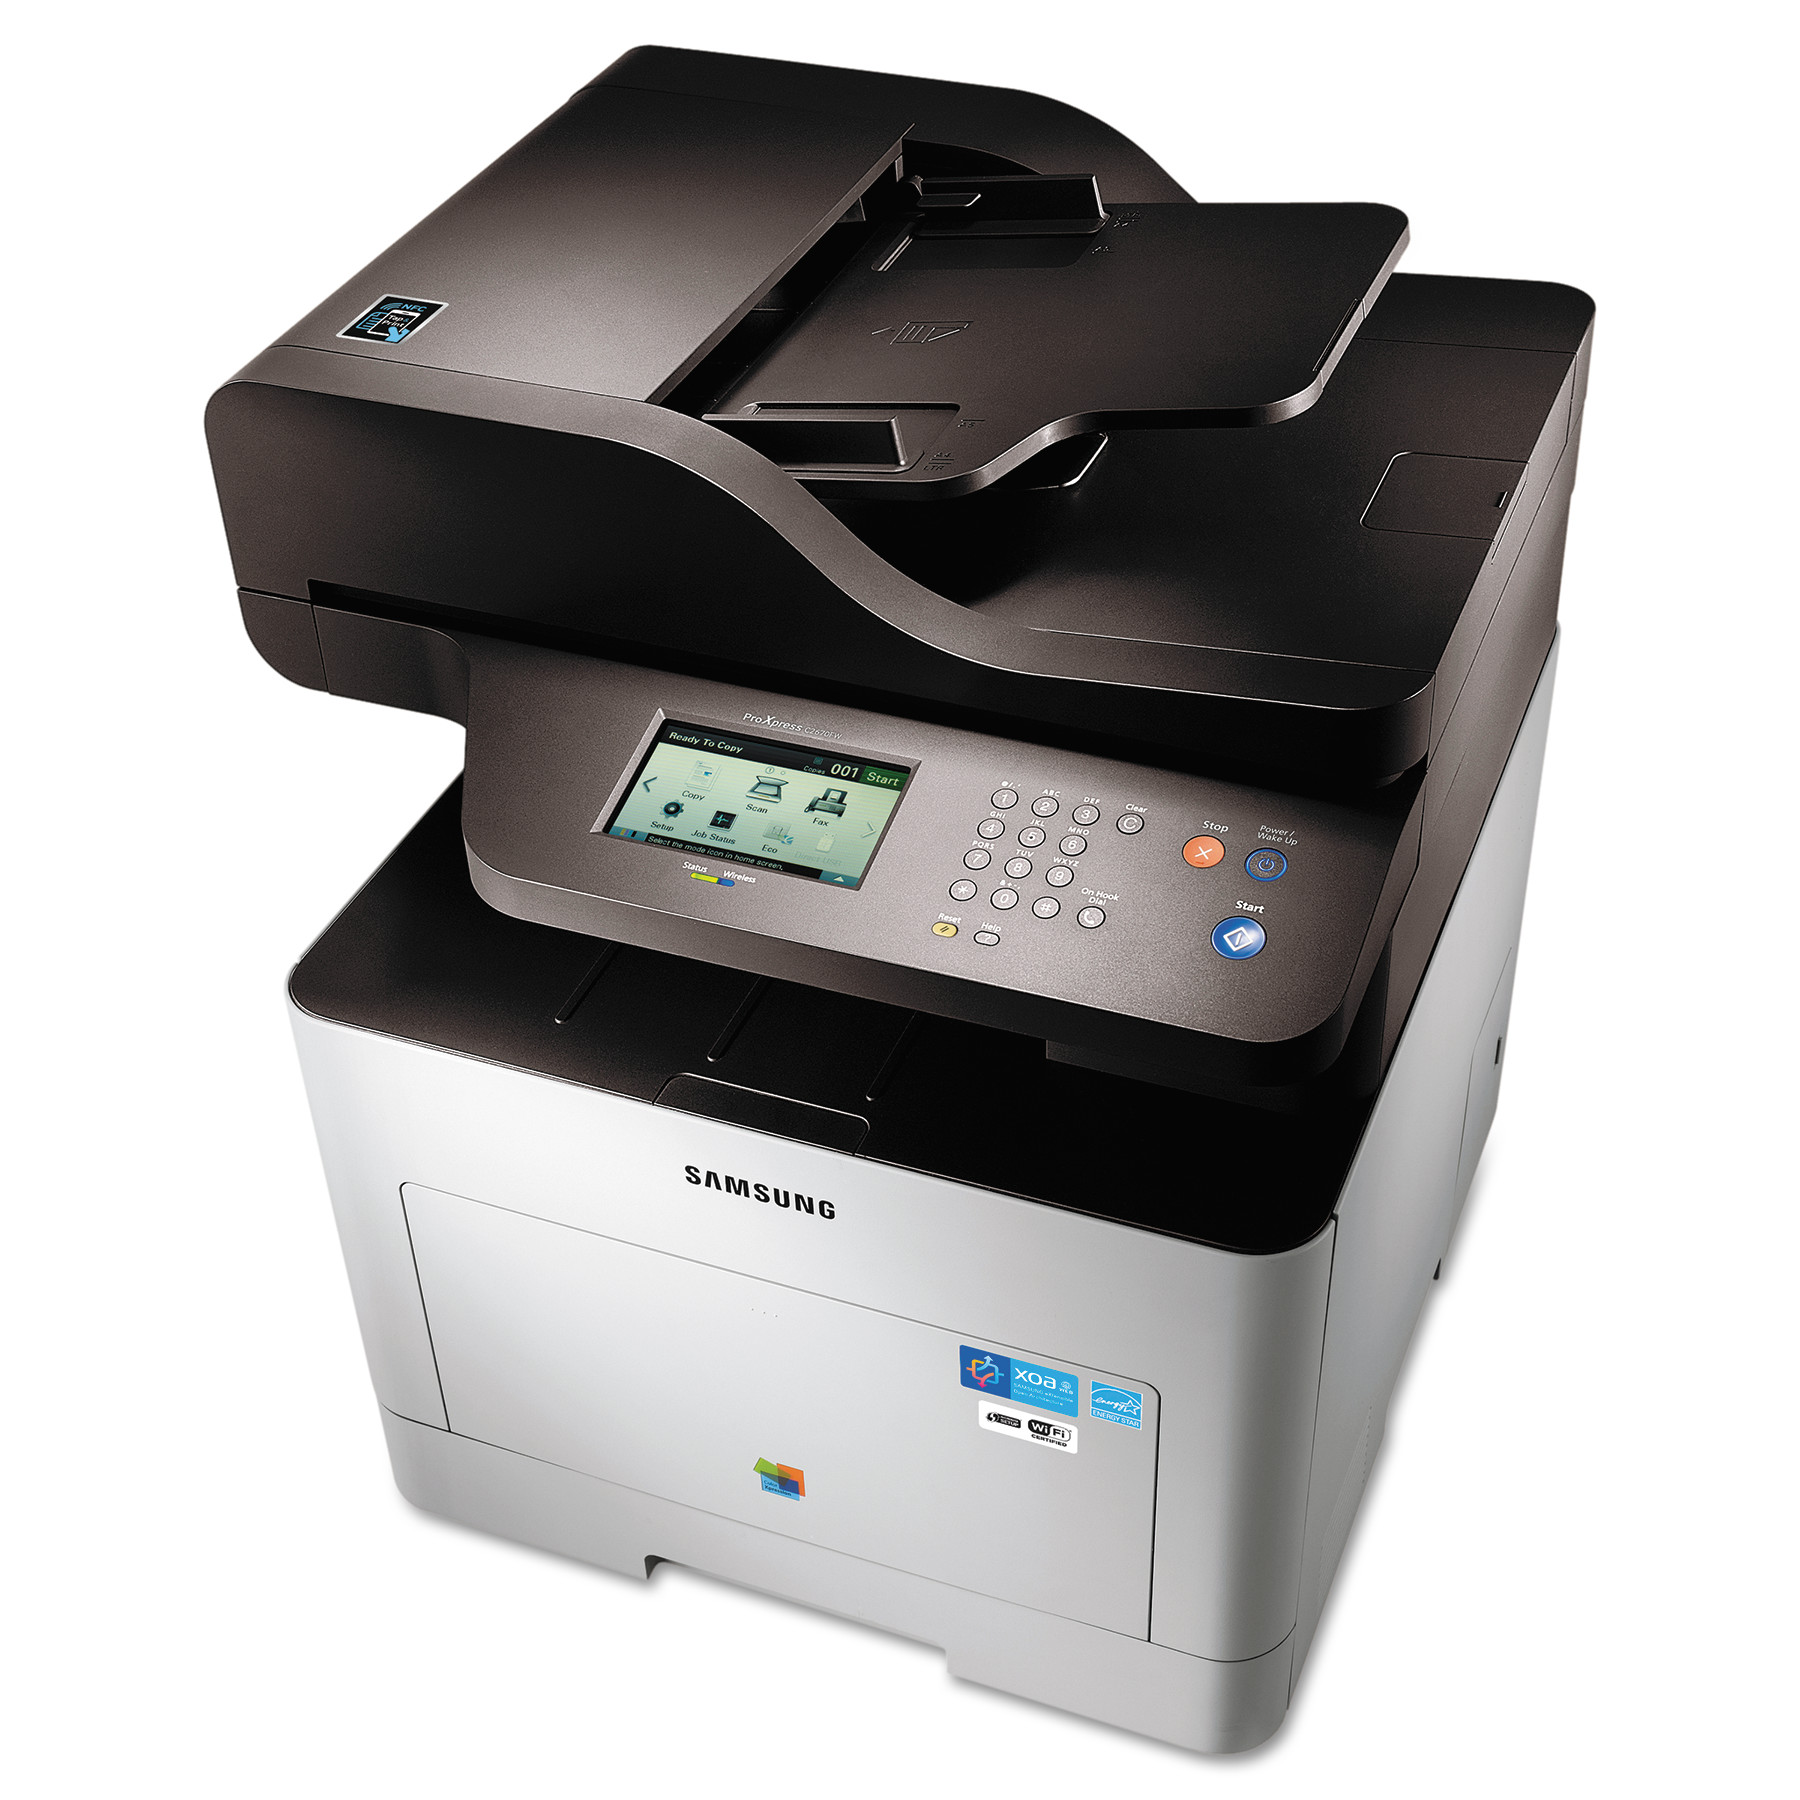 Samsung ProXpress SL-C2670FW Color Laser Multifunction Printer, Copy/Fax/Print/Scan